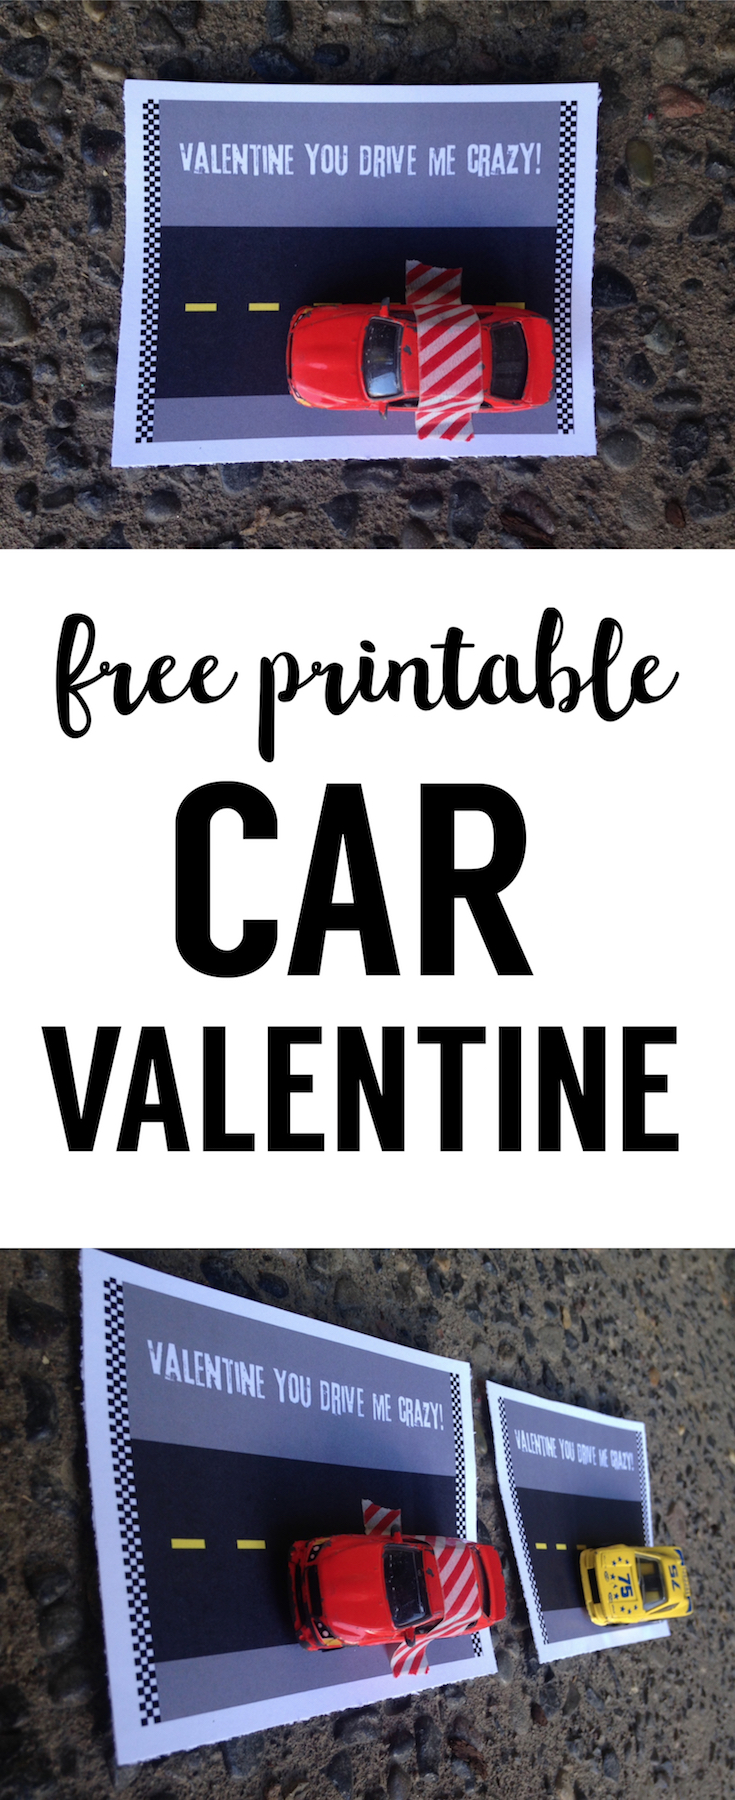 Free Printable Car Valentine Card. DIY no candy valentine is great for kids valentines at school valentine's day parties.